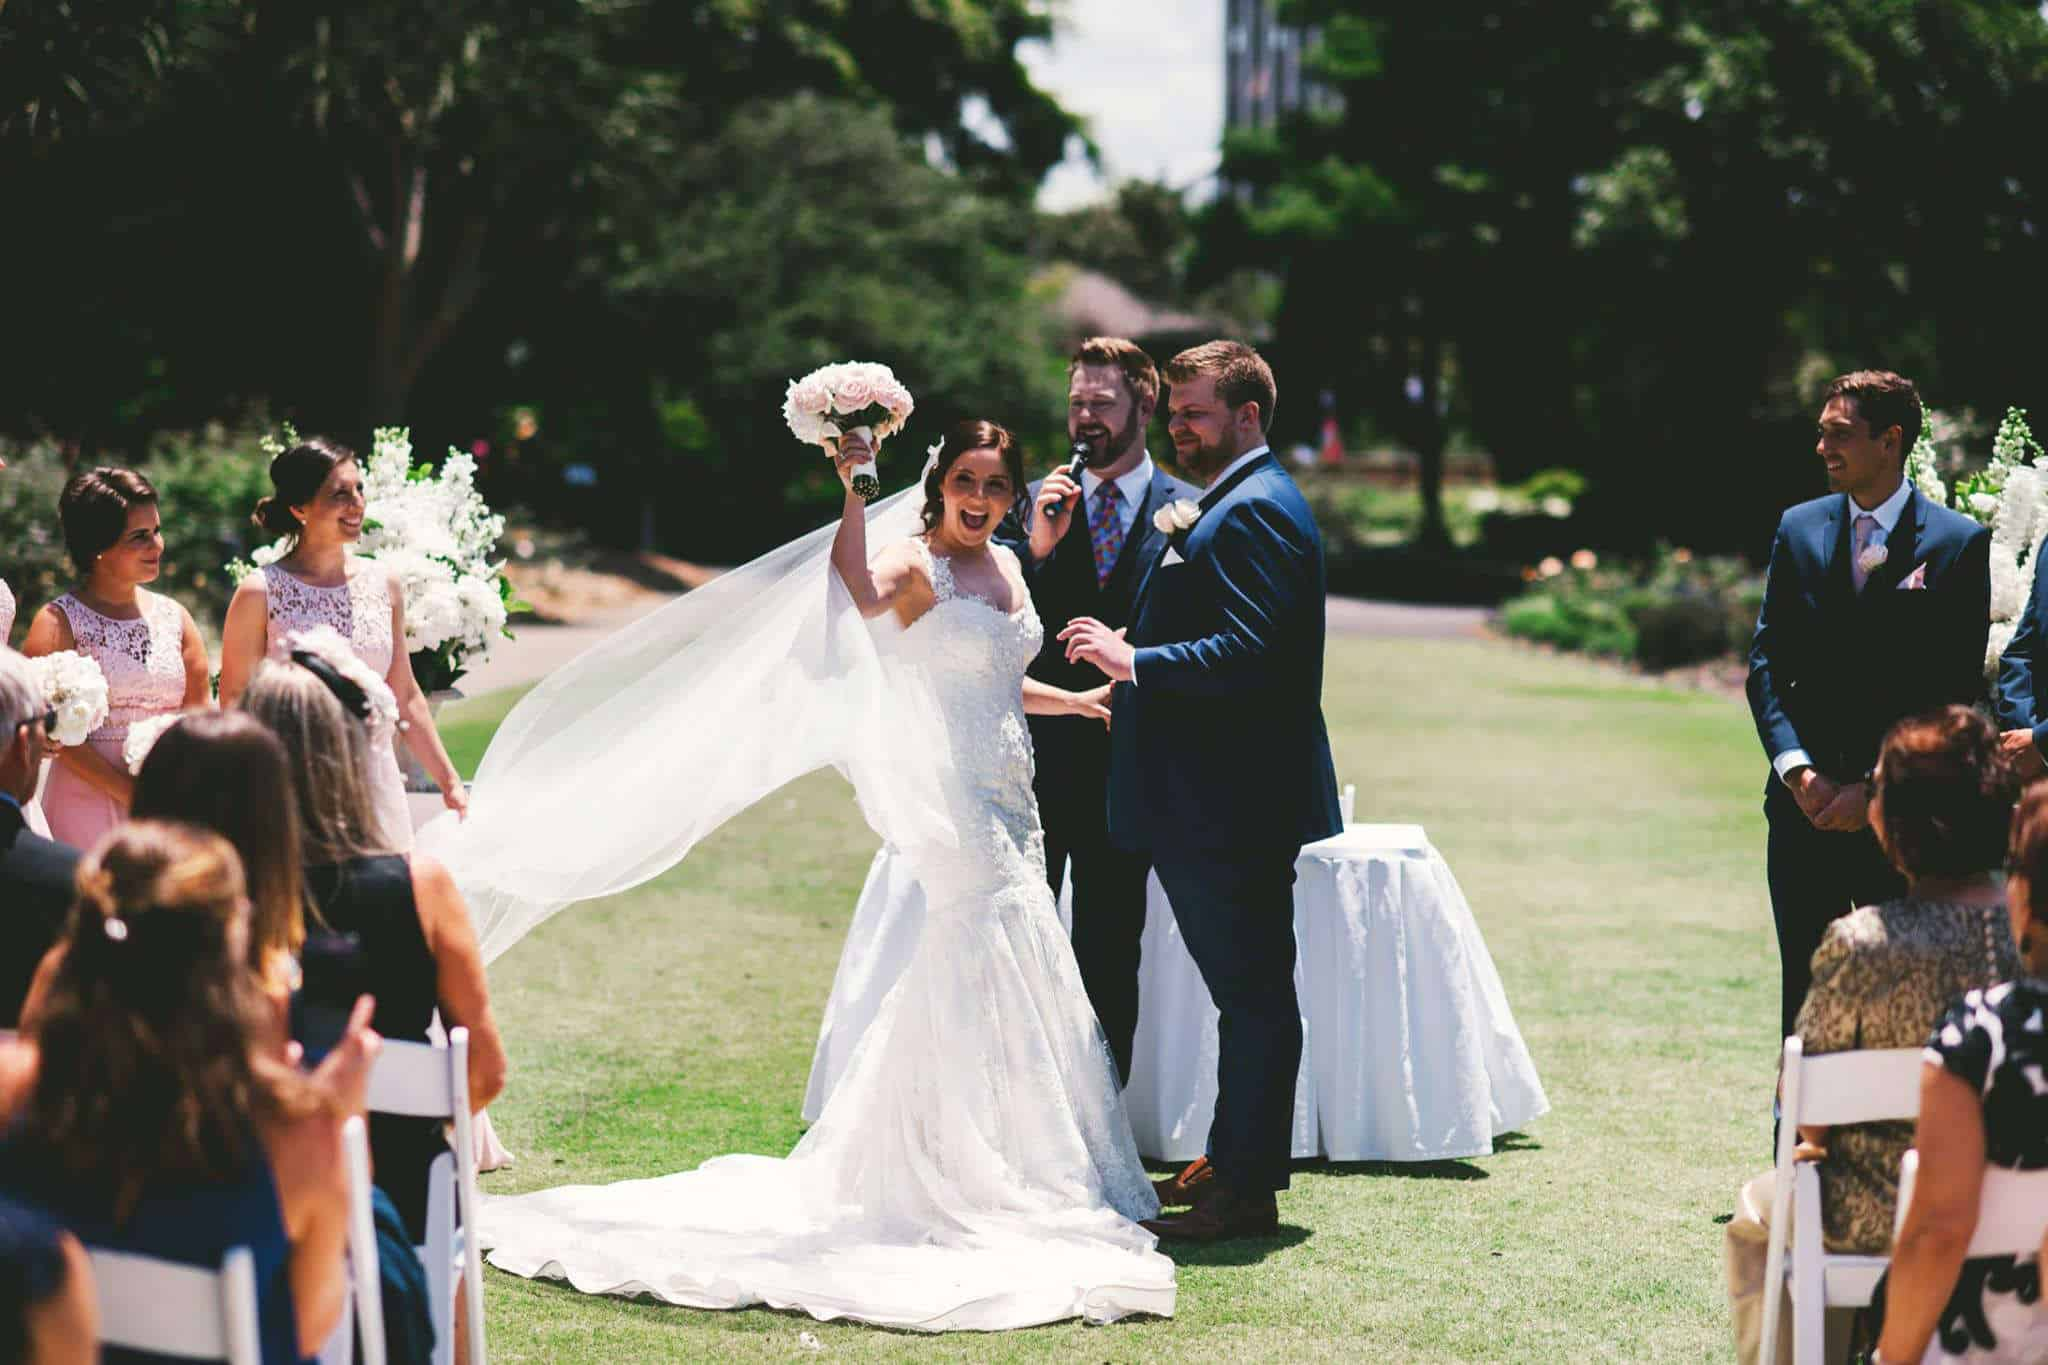 David and Carmel - Sydney Male Marriage Celebrant Stephen Lee